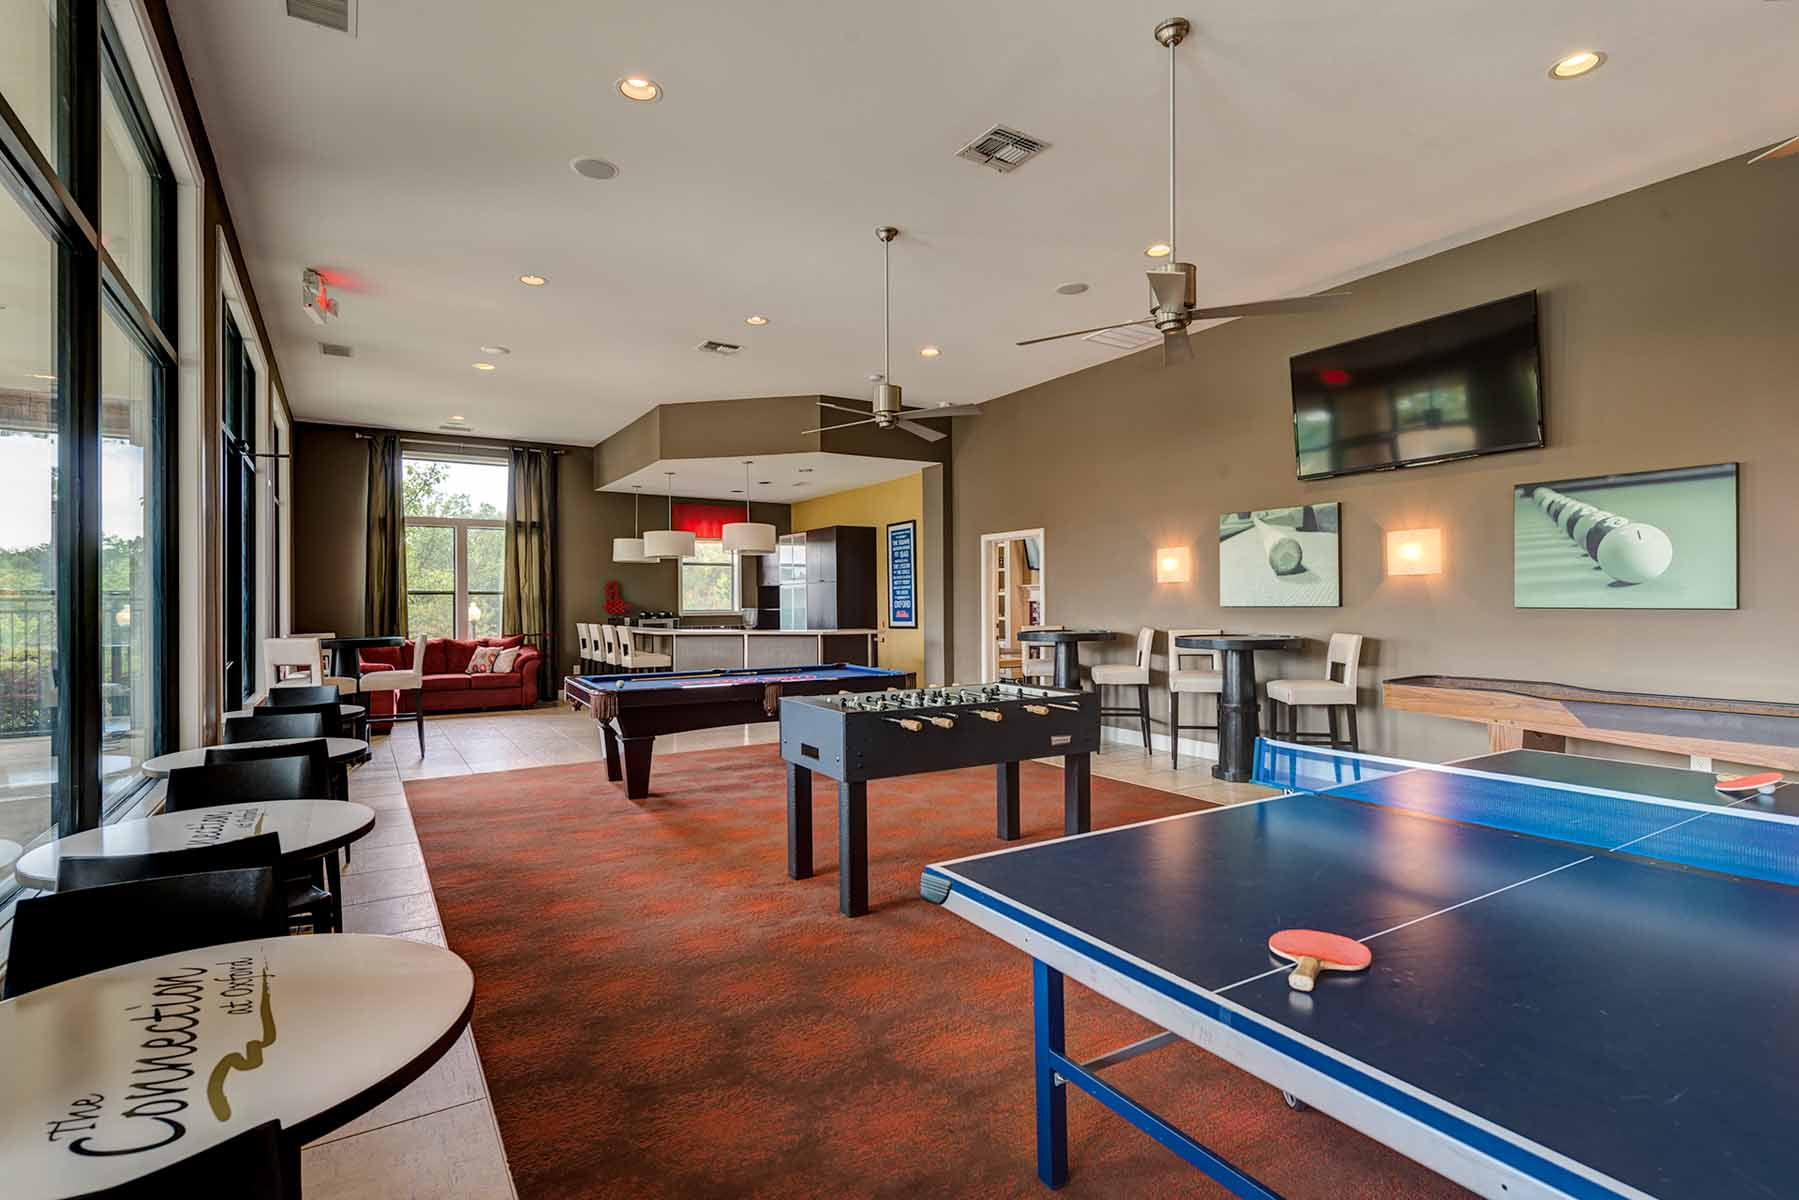 Clubhouse with Ping-Pong and Pool Table